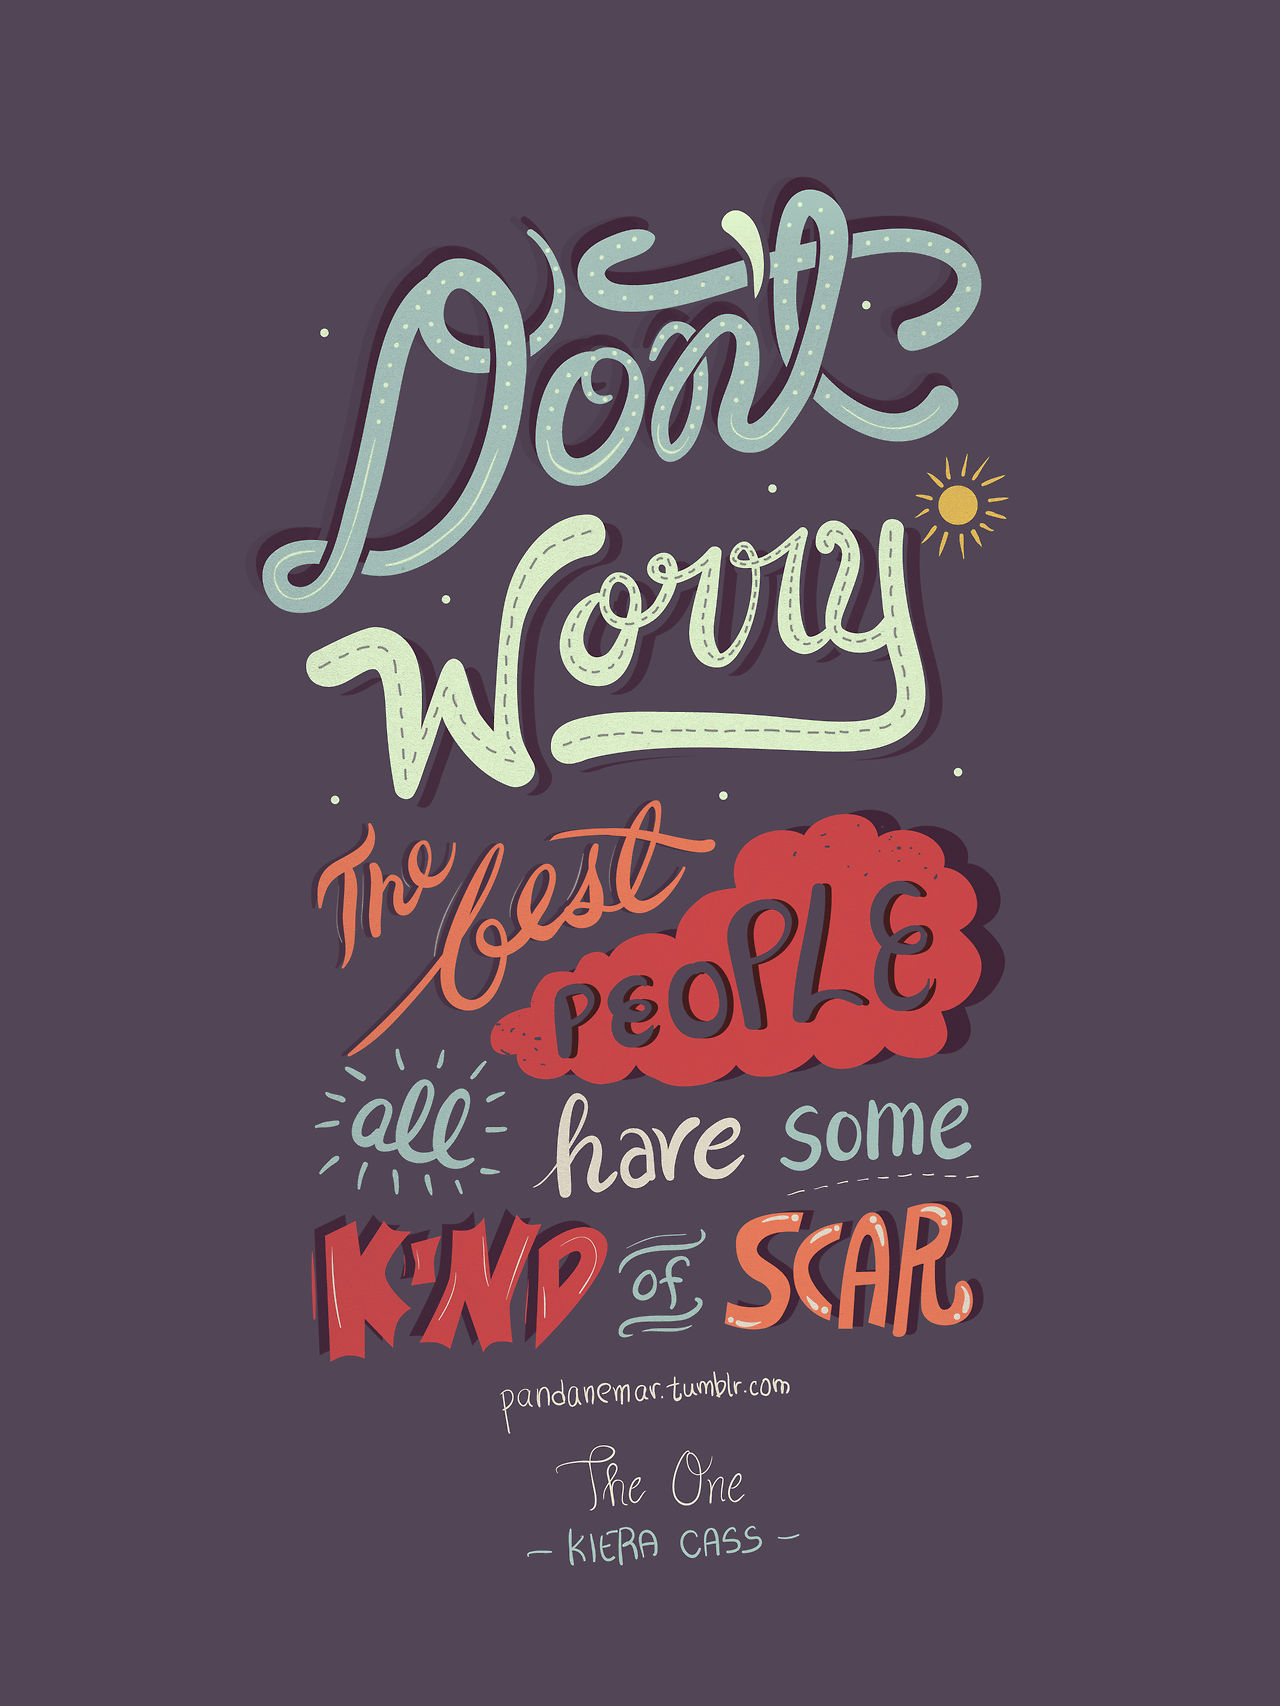 Graphics: a selection of quotes